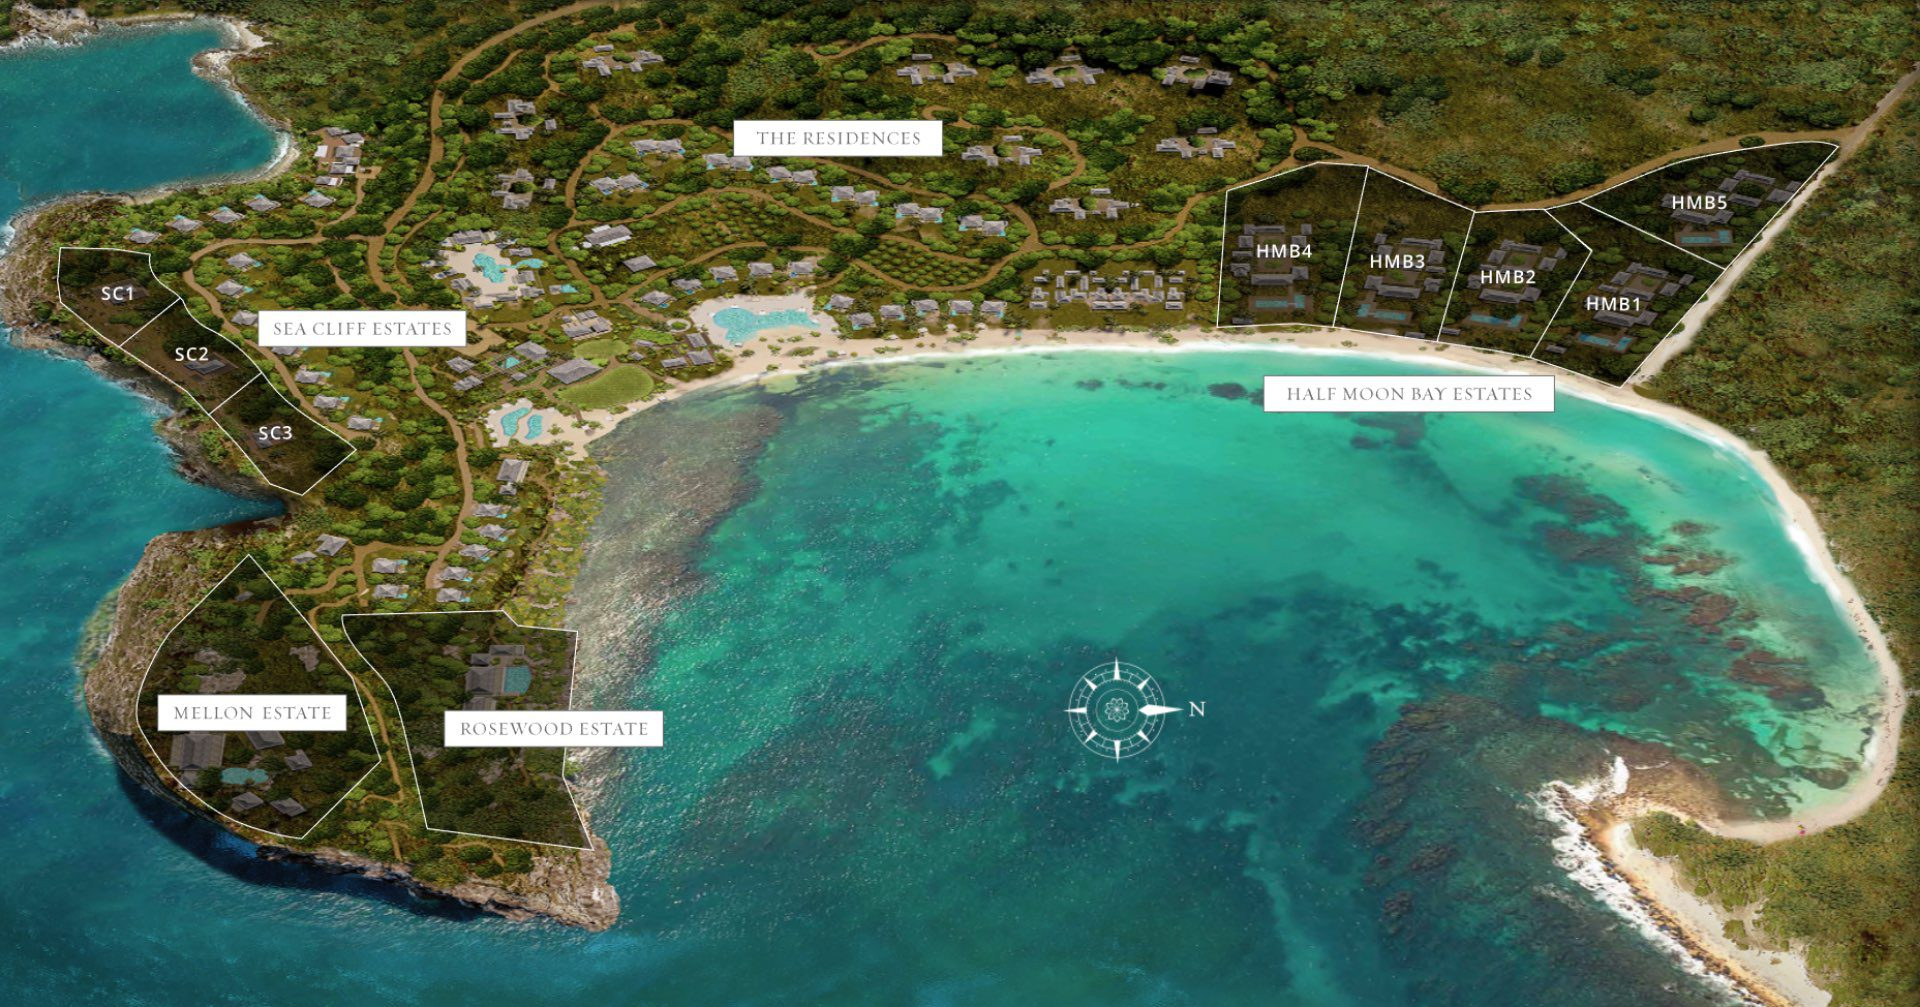 The Strand Turks and Caicos - Resort map